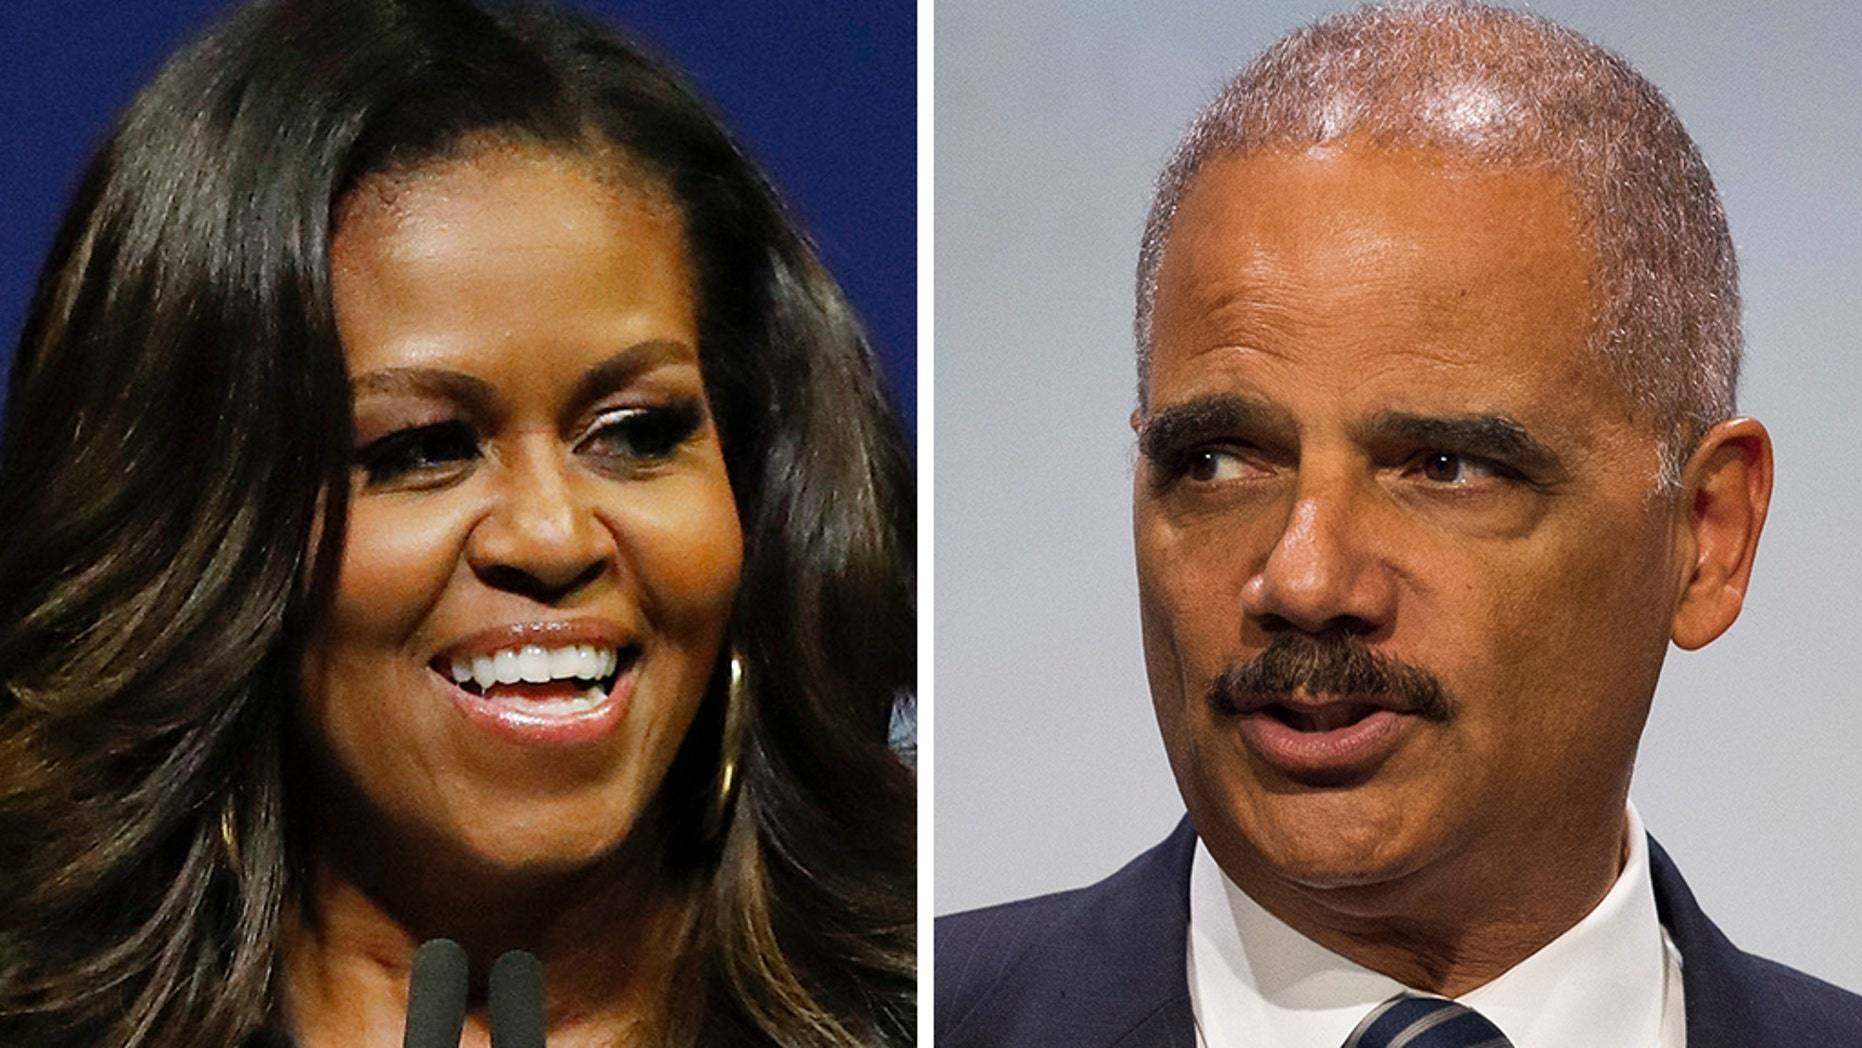 Michelle Obama pushed back on Eric Holder's call to ditch civility in politics.